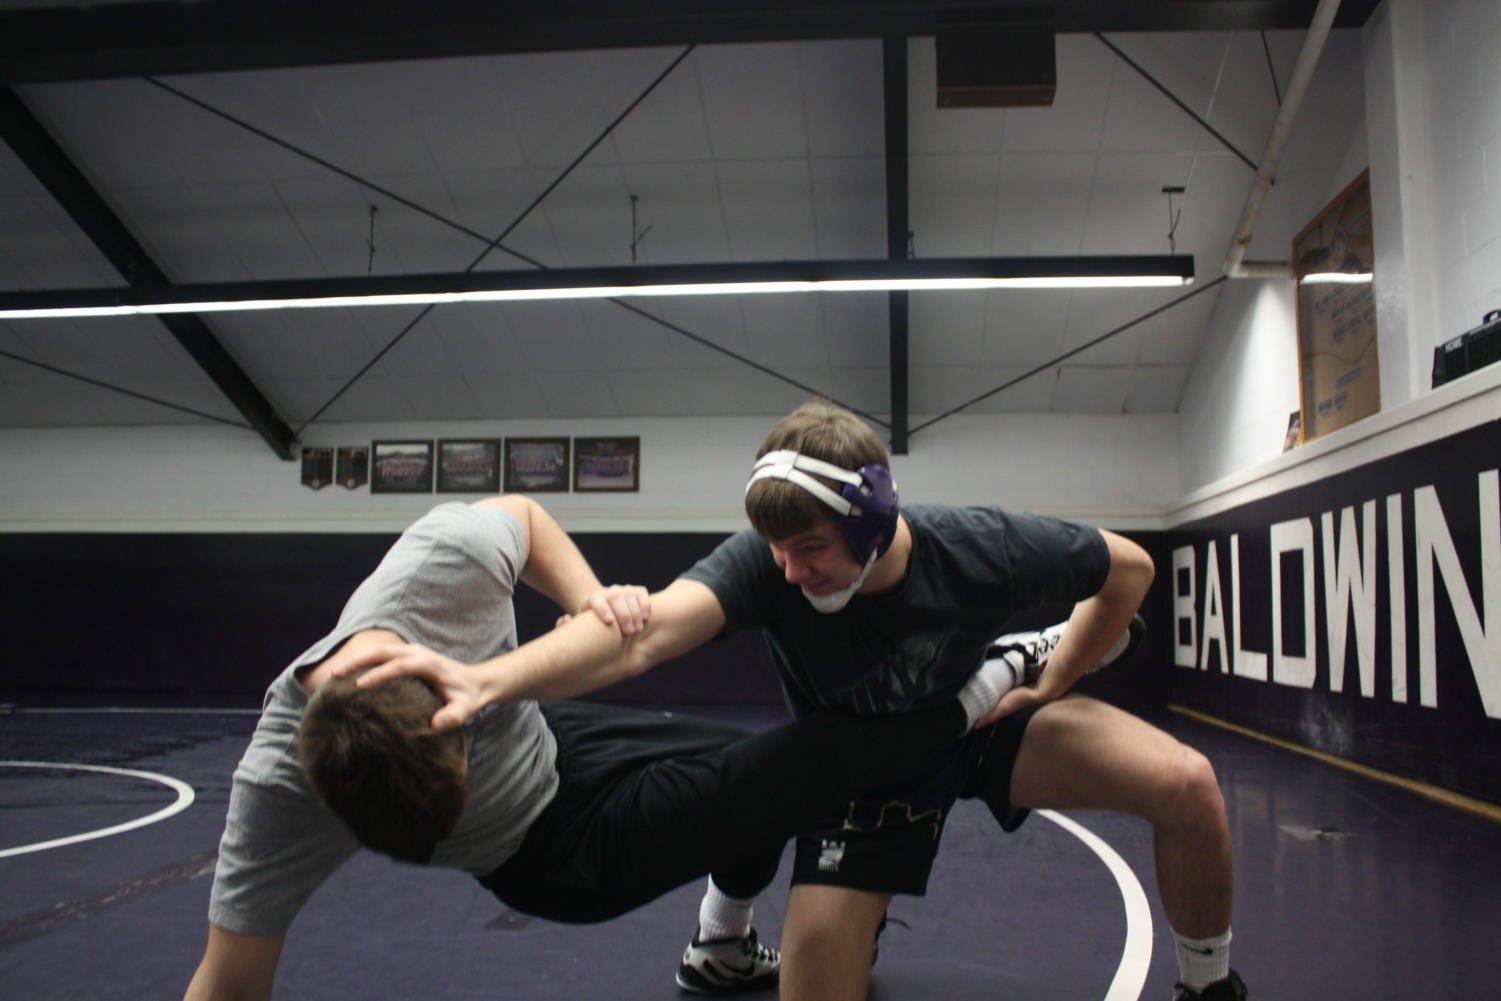 Senior Connor Sidoruk while at practice. Sidoruk has been a key member of the varsity wrestling team for all four years.